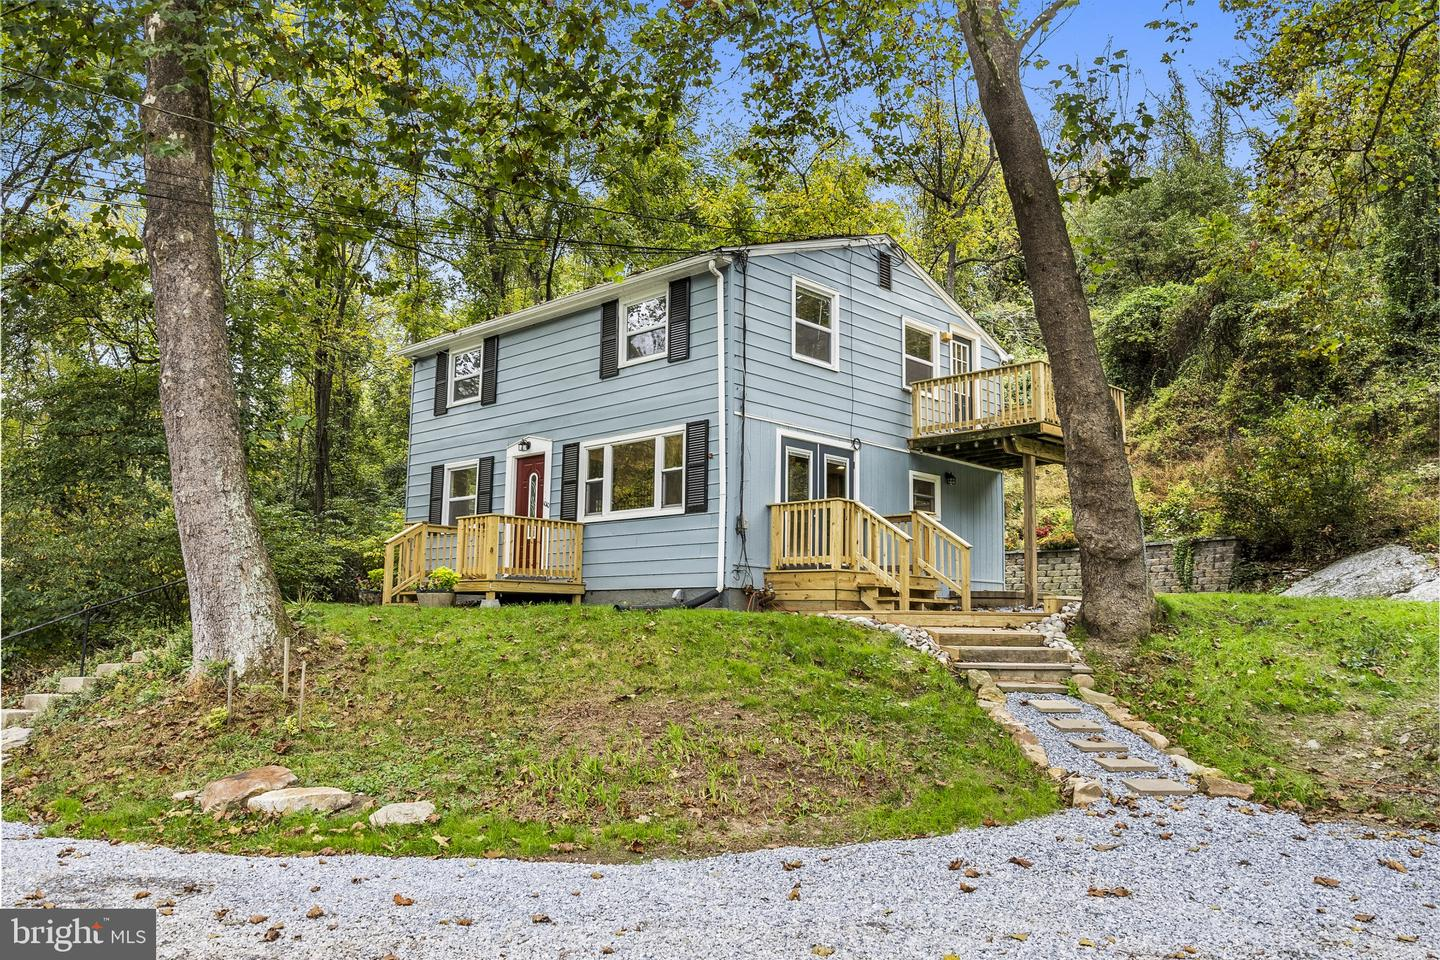 1010 Sugarsbridge Road West Chester, PA 19380